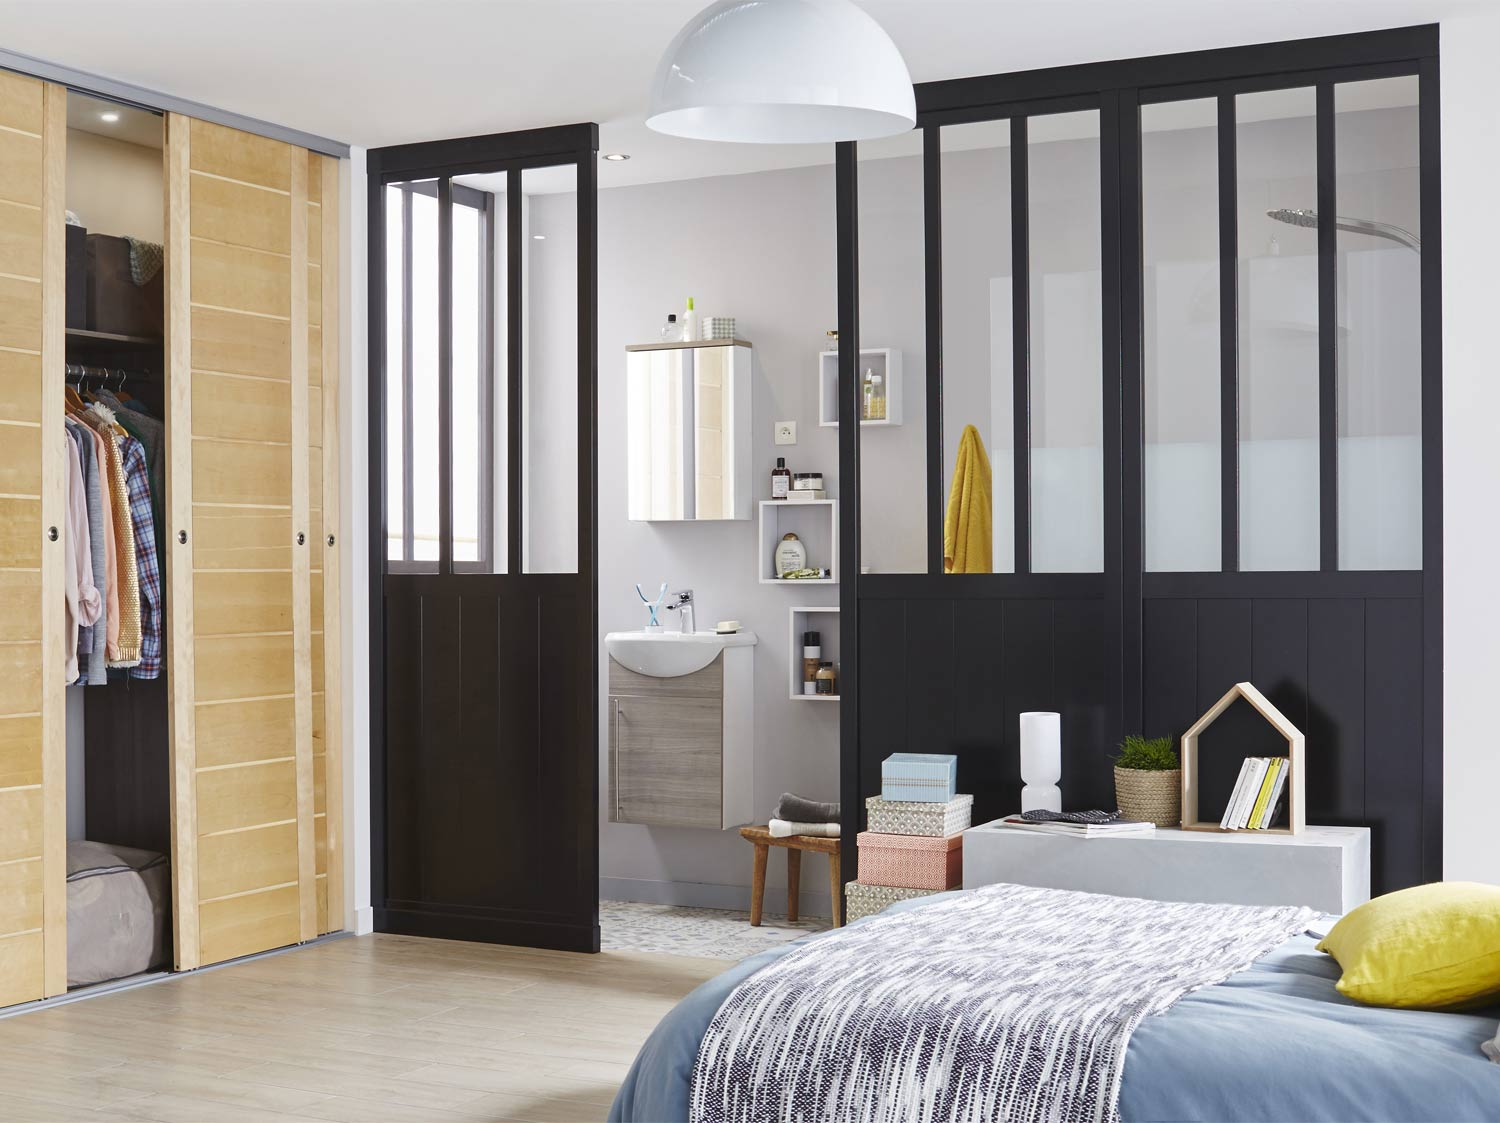 cloison atelier leroy merlin maison design. Black Bedroom Furniture Sets. Home Design Ideas